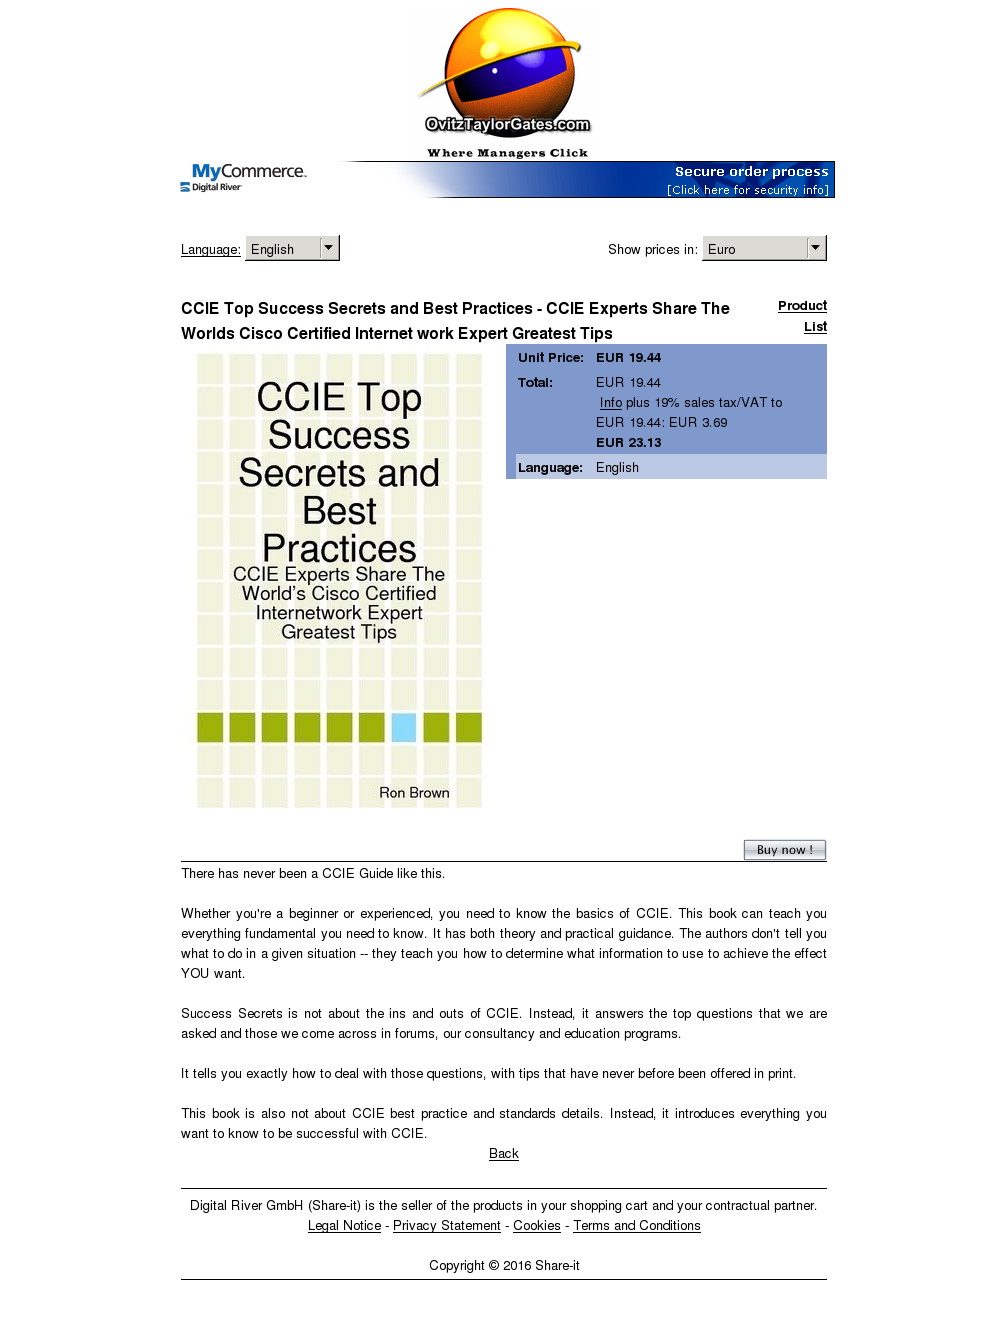 Ccie Top Success Secrets Best Practices Experts Share Worlds Cisco Certified Internet Work Expert Greatest Tips Alternative